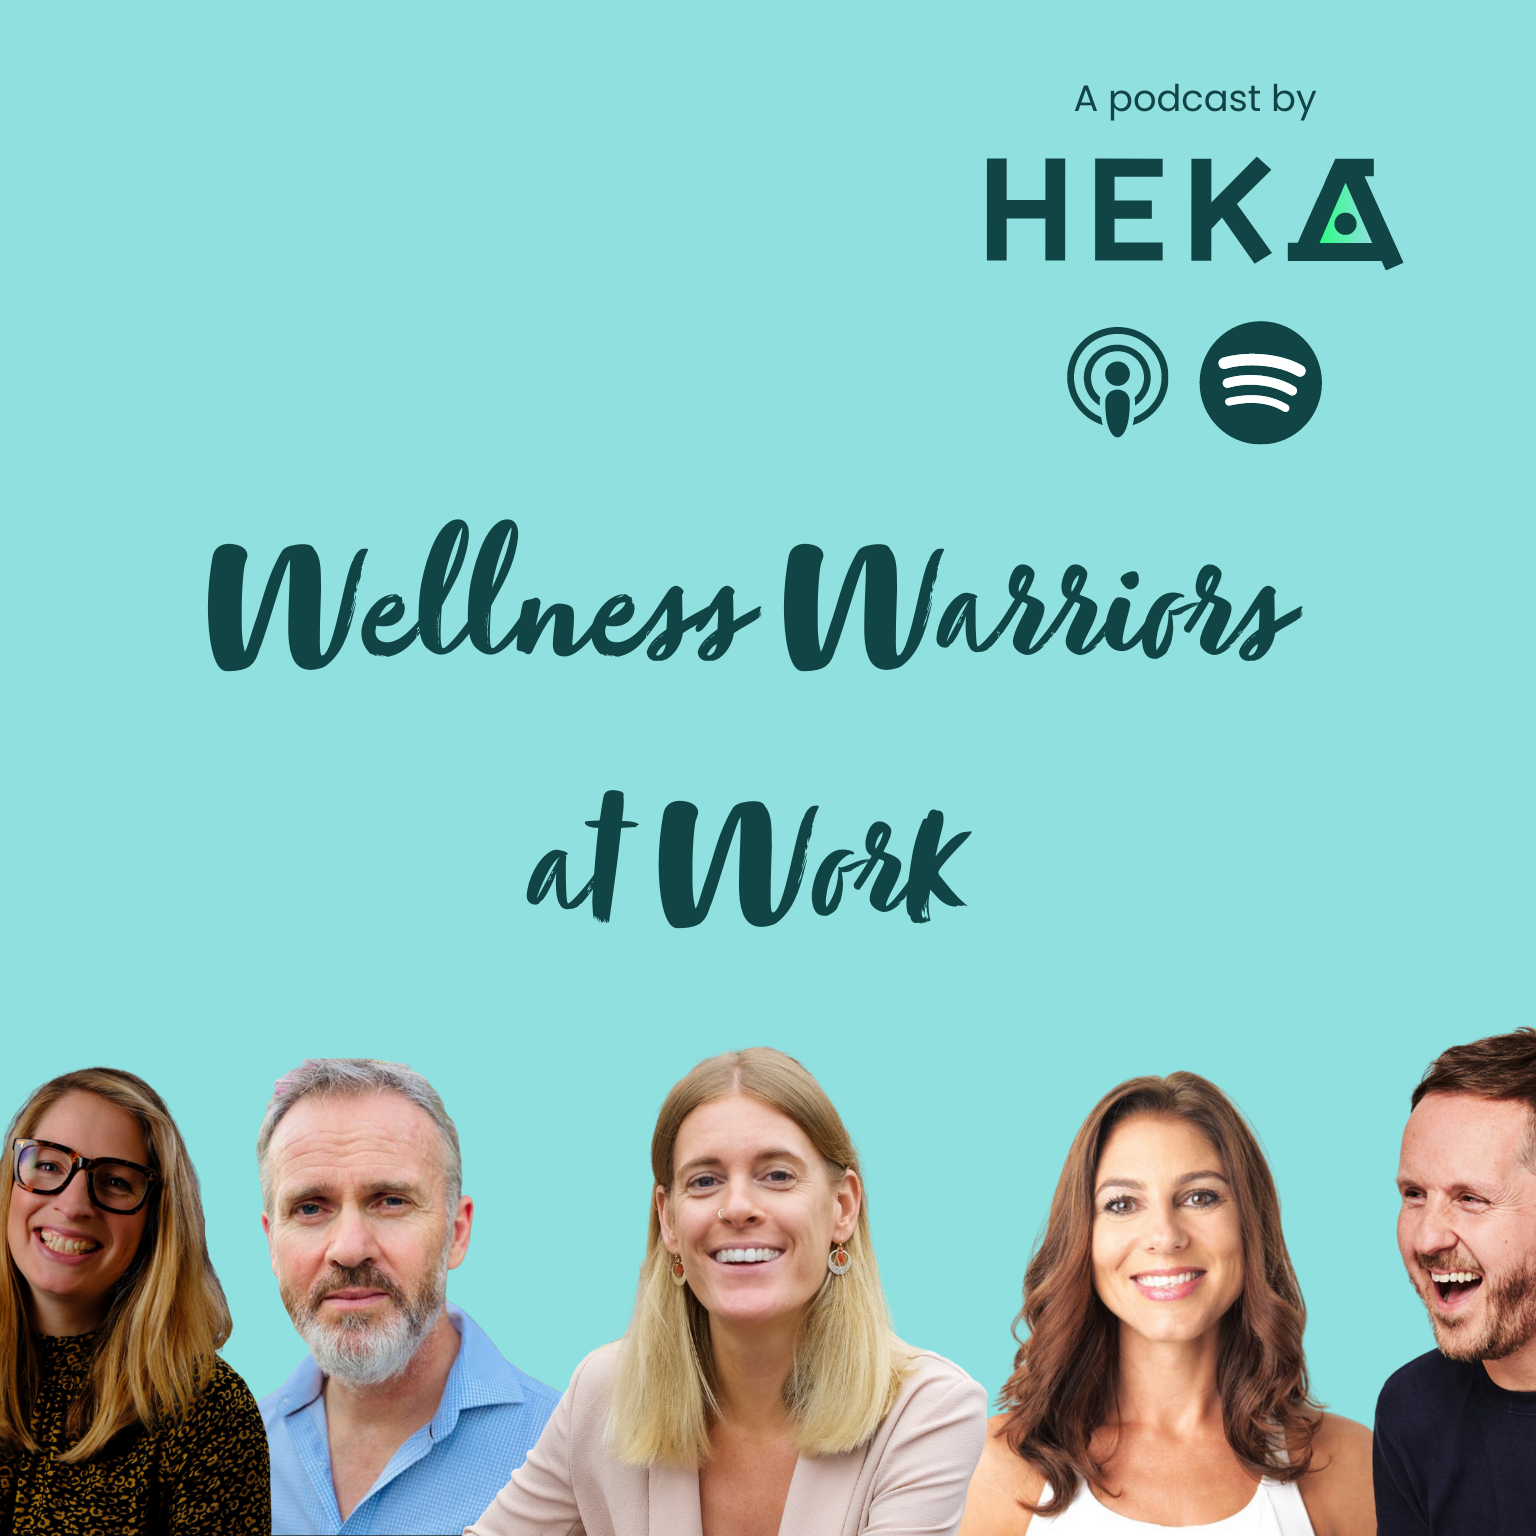 Welness Warriors at work - a podcast by Heka